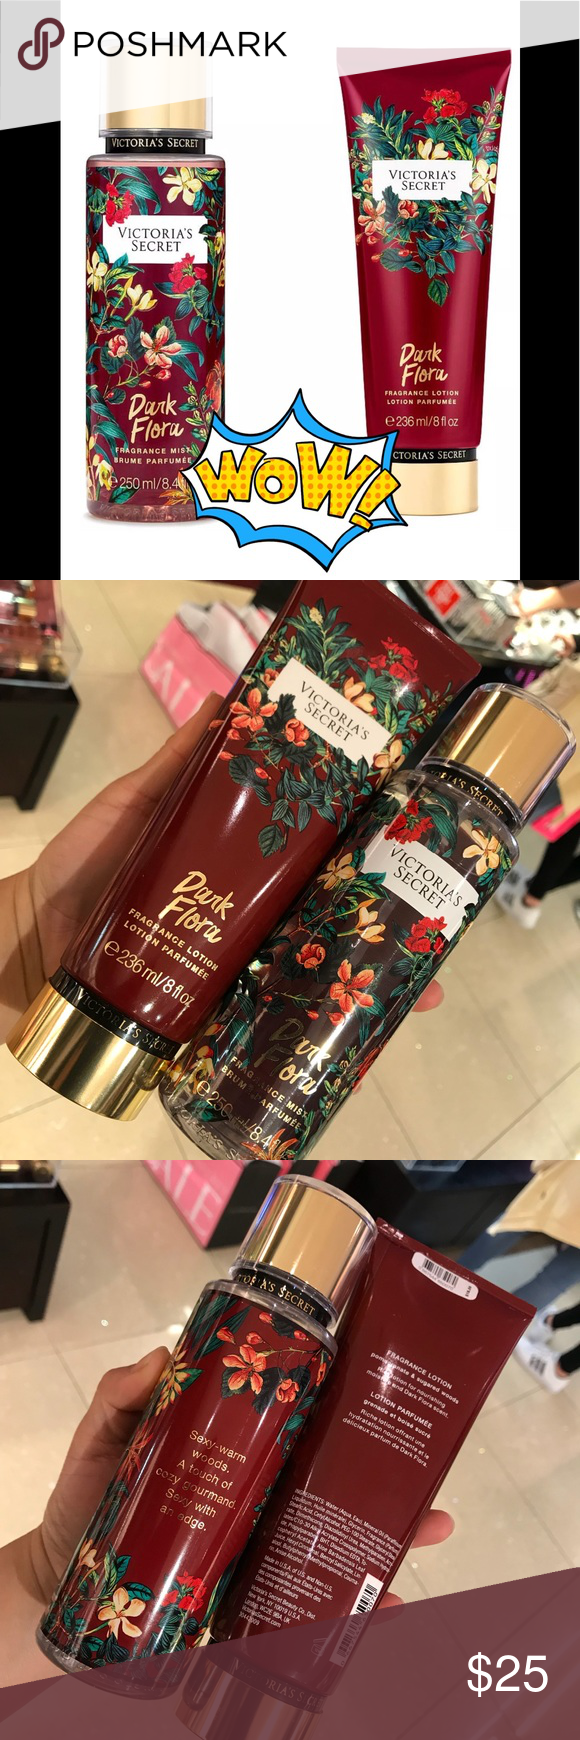 ee1b9711a5 Spotted while shopping on Poshmark  Victoria Secret Dark Flora Fragrance  Lotion   Mist!  poshmark  fashion  shopping  style  Victoria s Secret  Other